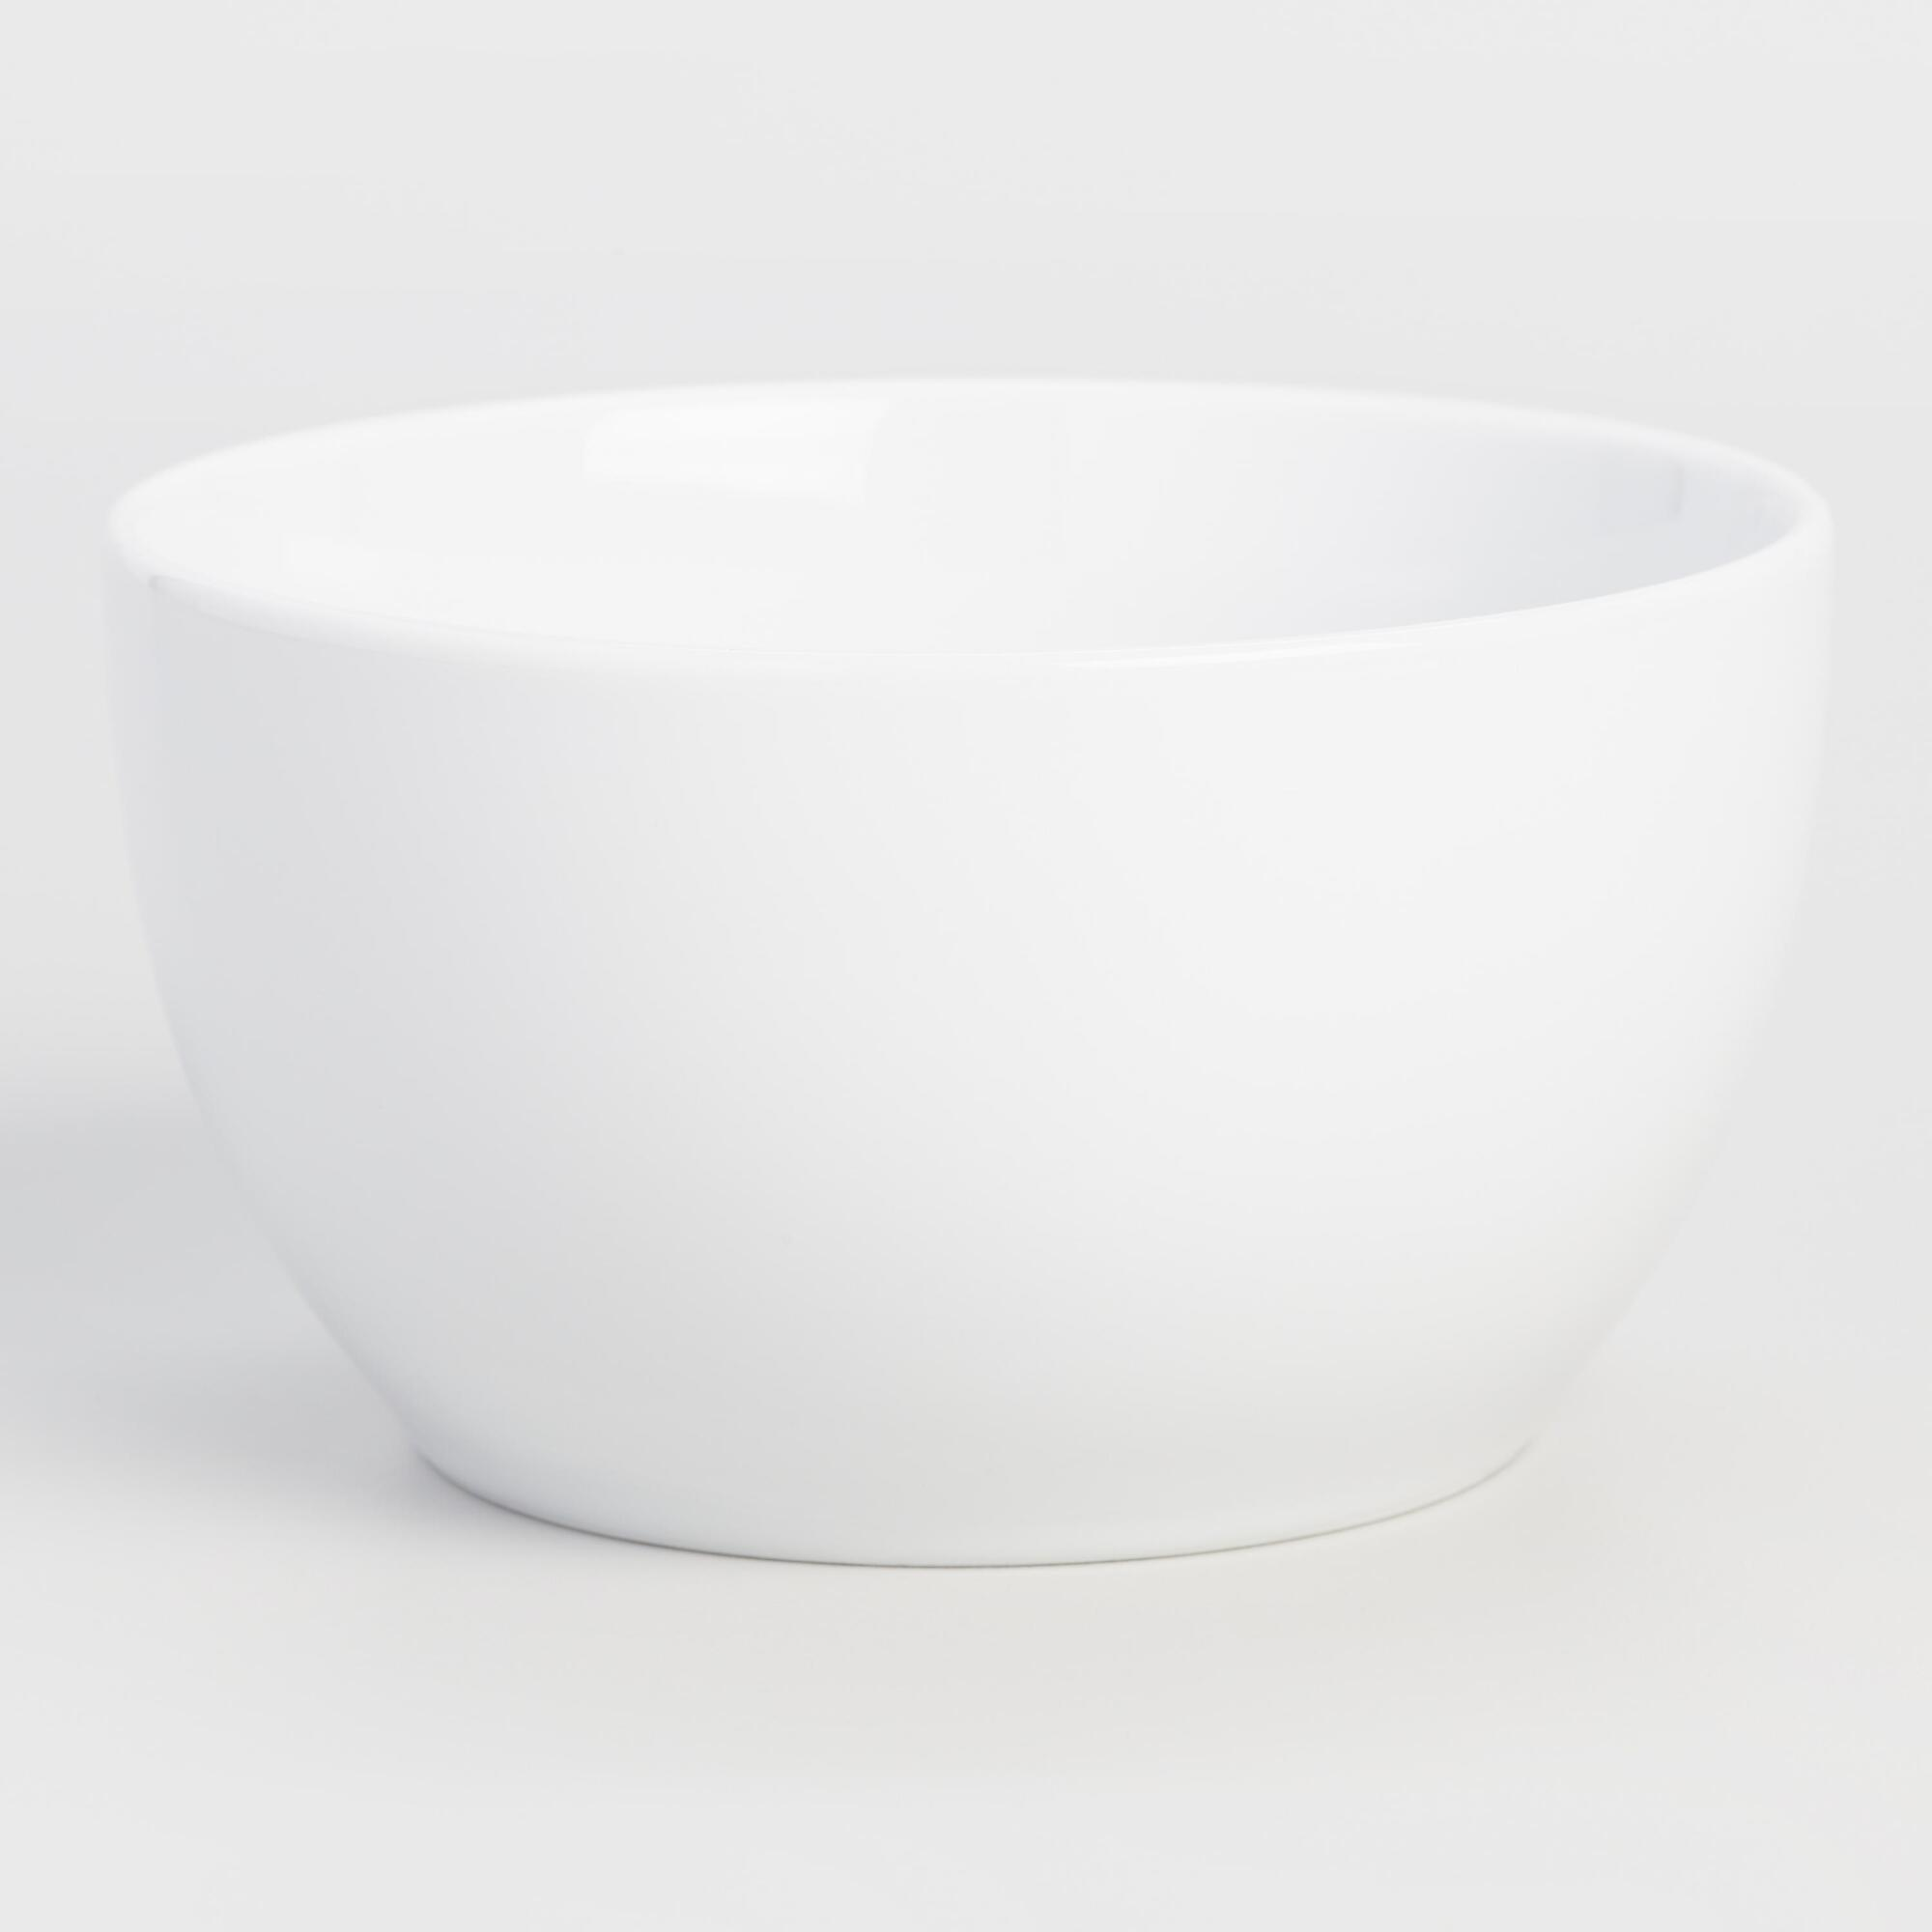 White Coupe Cereal Bowls, set of 4 | World Market